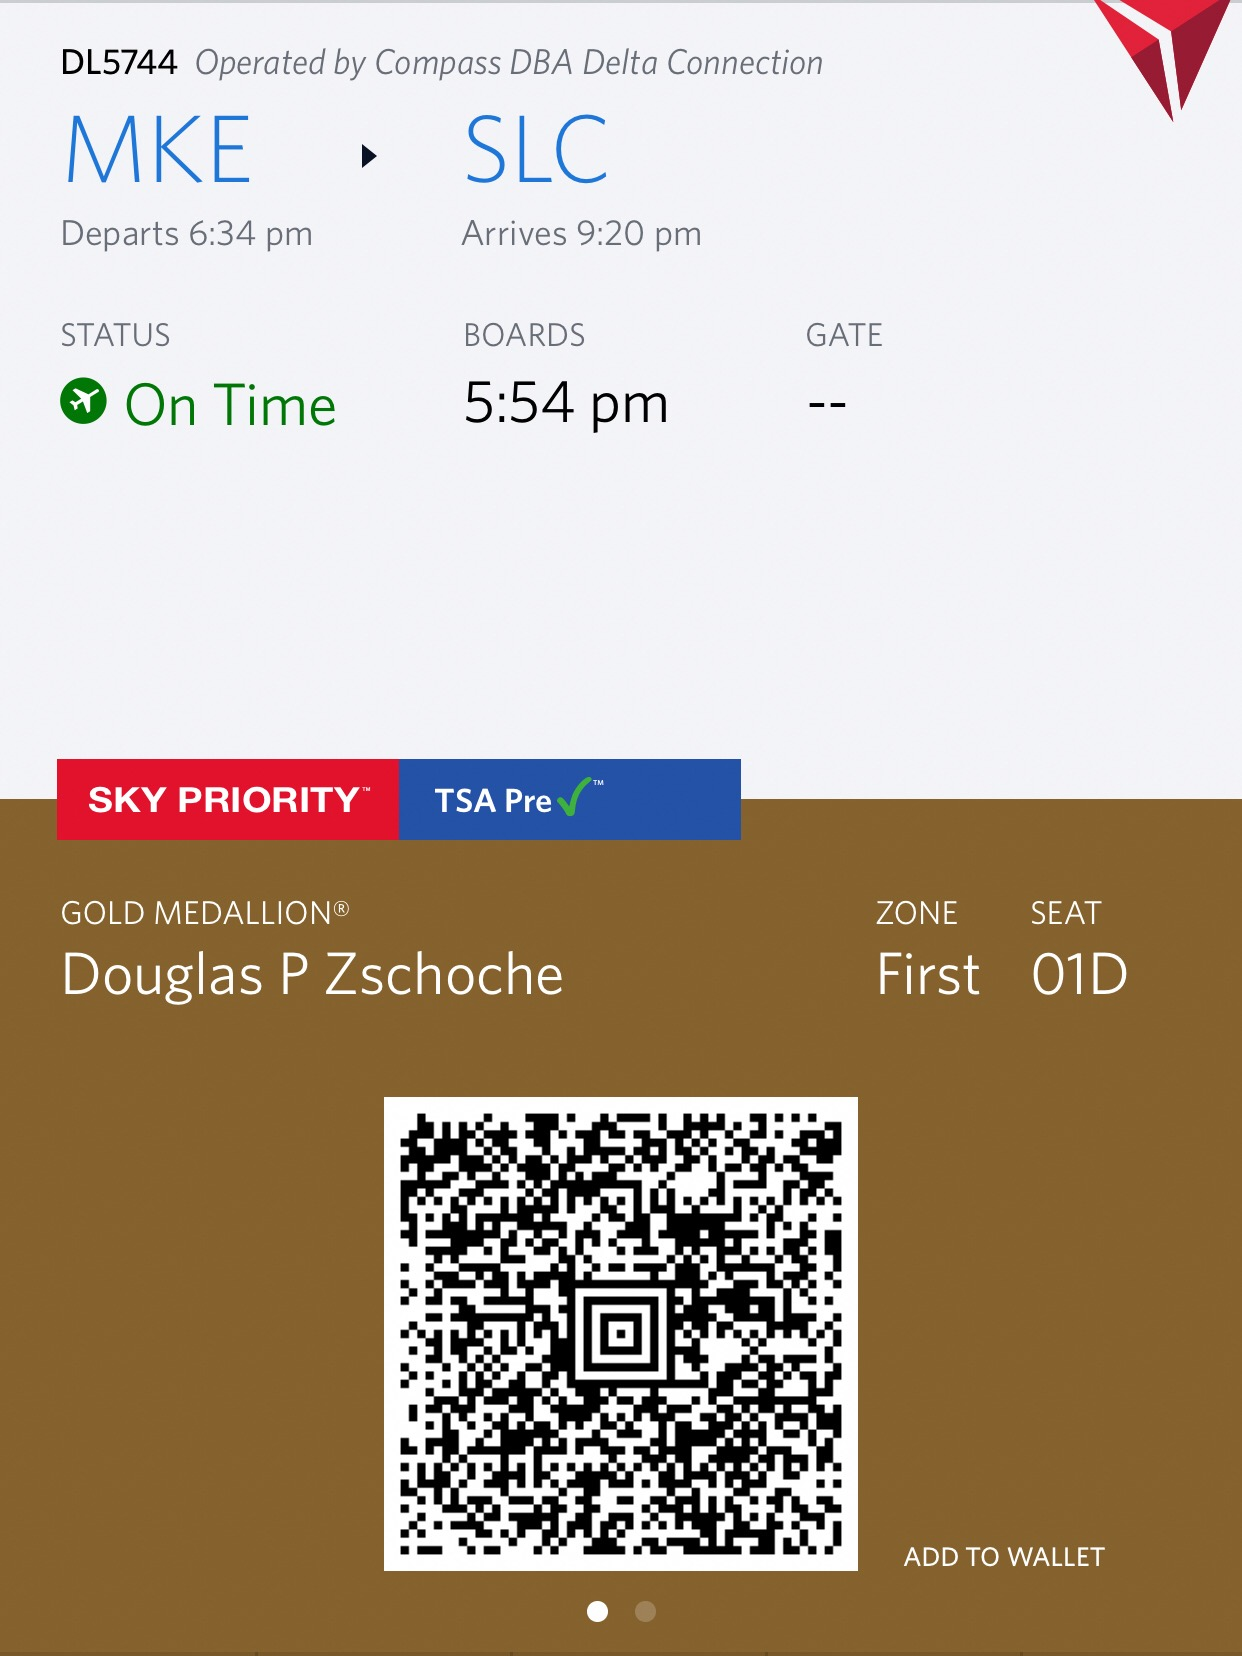 Your boarding pass becomes available once you have acknowledged the Hazardous Materials Policy. You can also change your seat, add checked bags, etc. once you are on this screen.